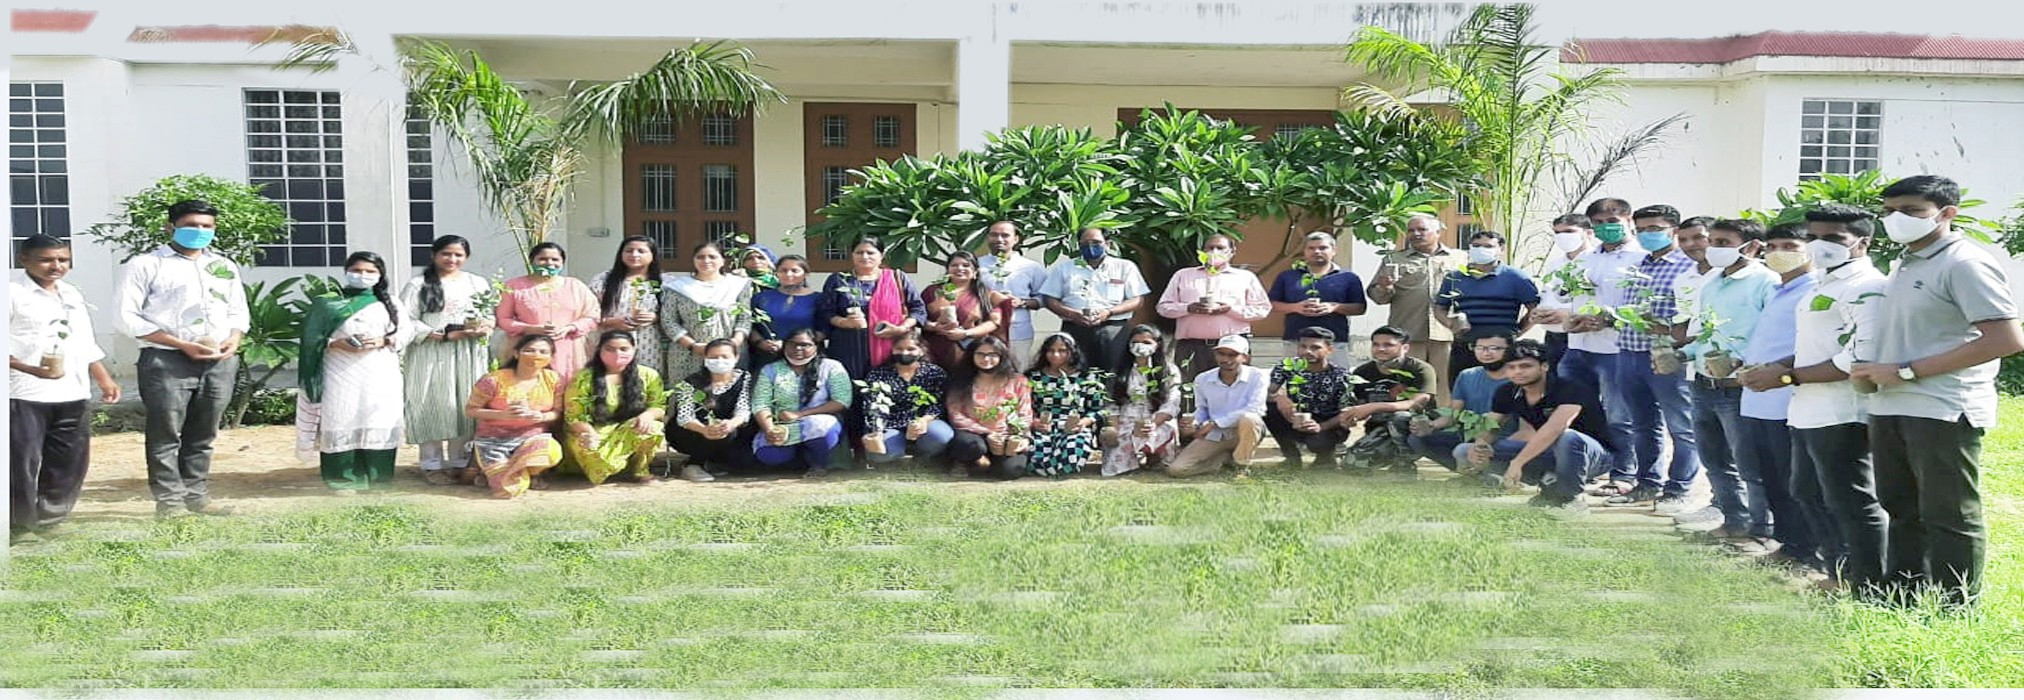 Tree plantation at MJFACH on the occasion of 75th Independence Day celebration